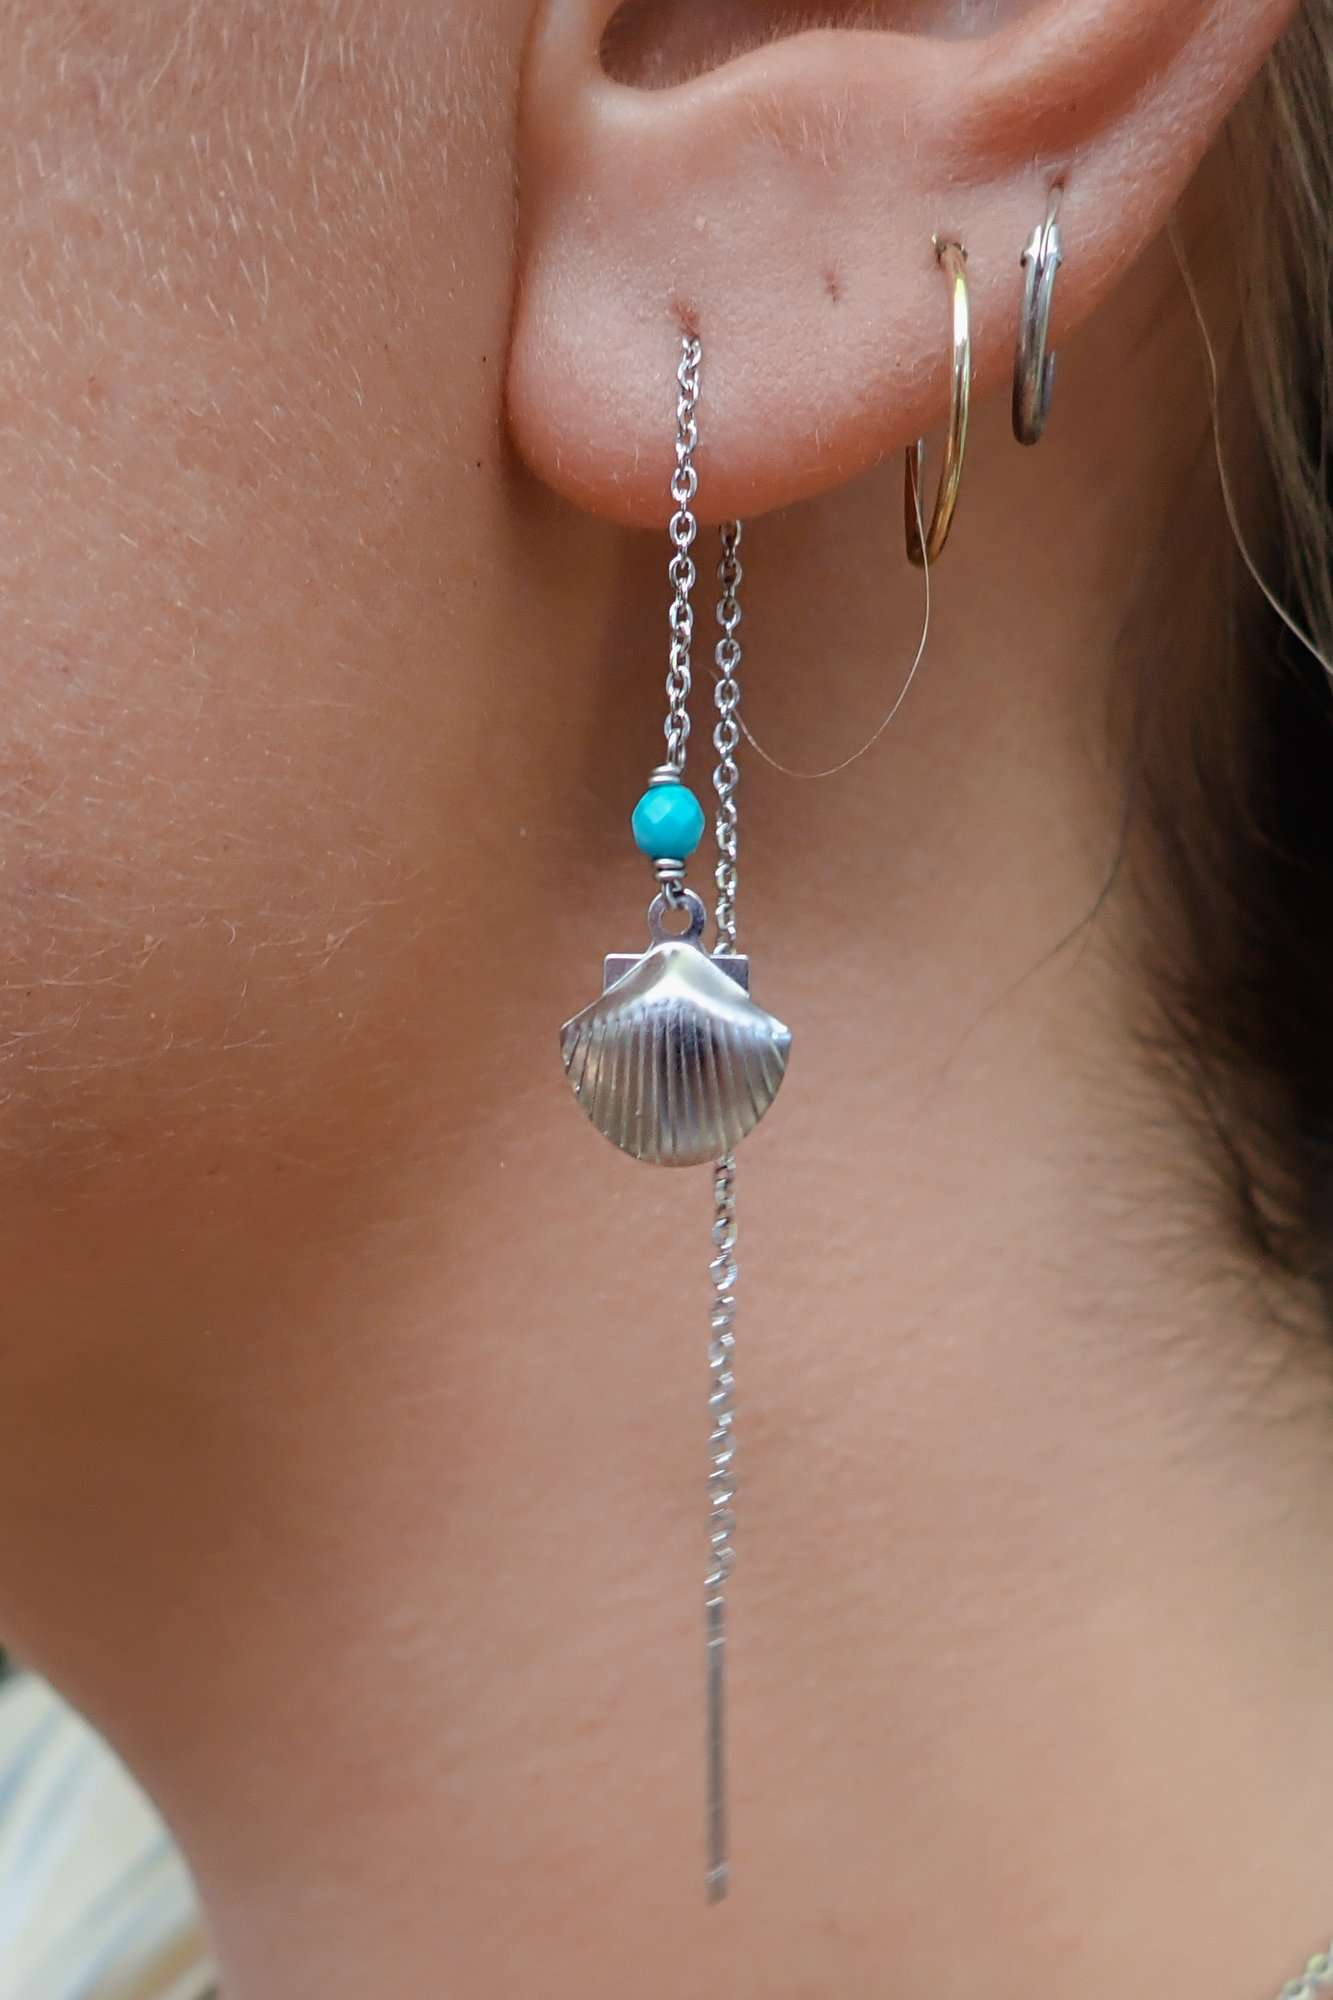 Silver Shell Ear Threads, Earrings with Turquoise by Lunarsea Designs